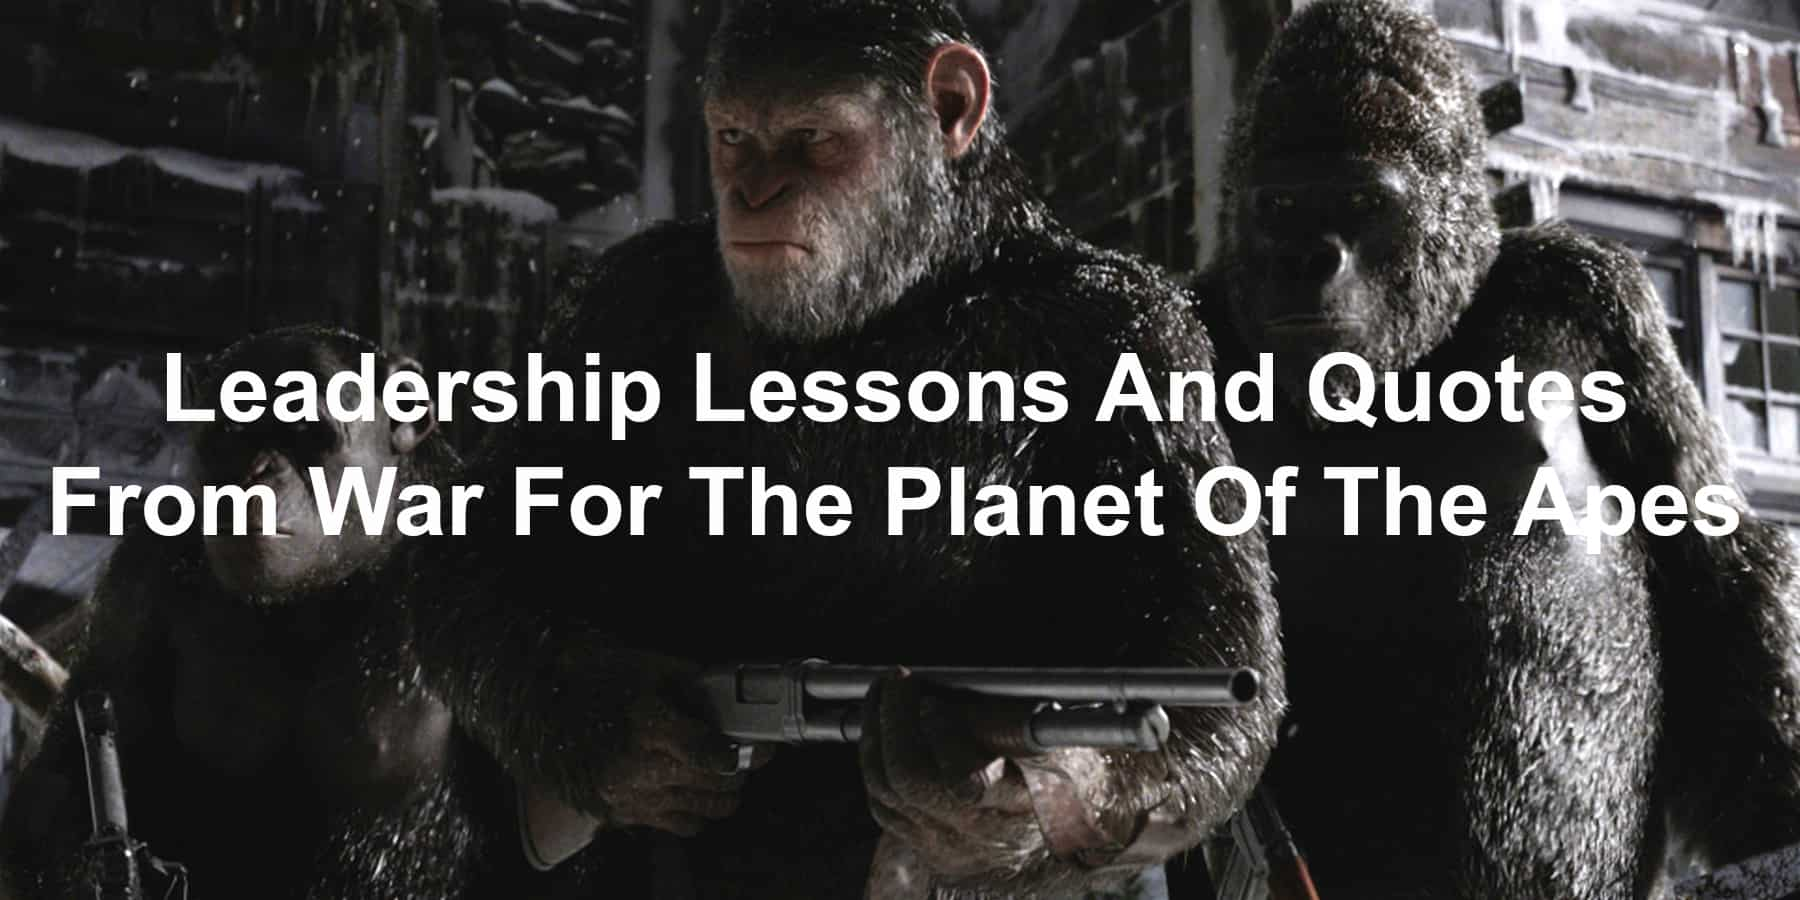 Quotes and Leadership Lessons And Quotes From War For The Planet Of The Apes